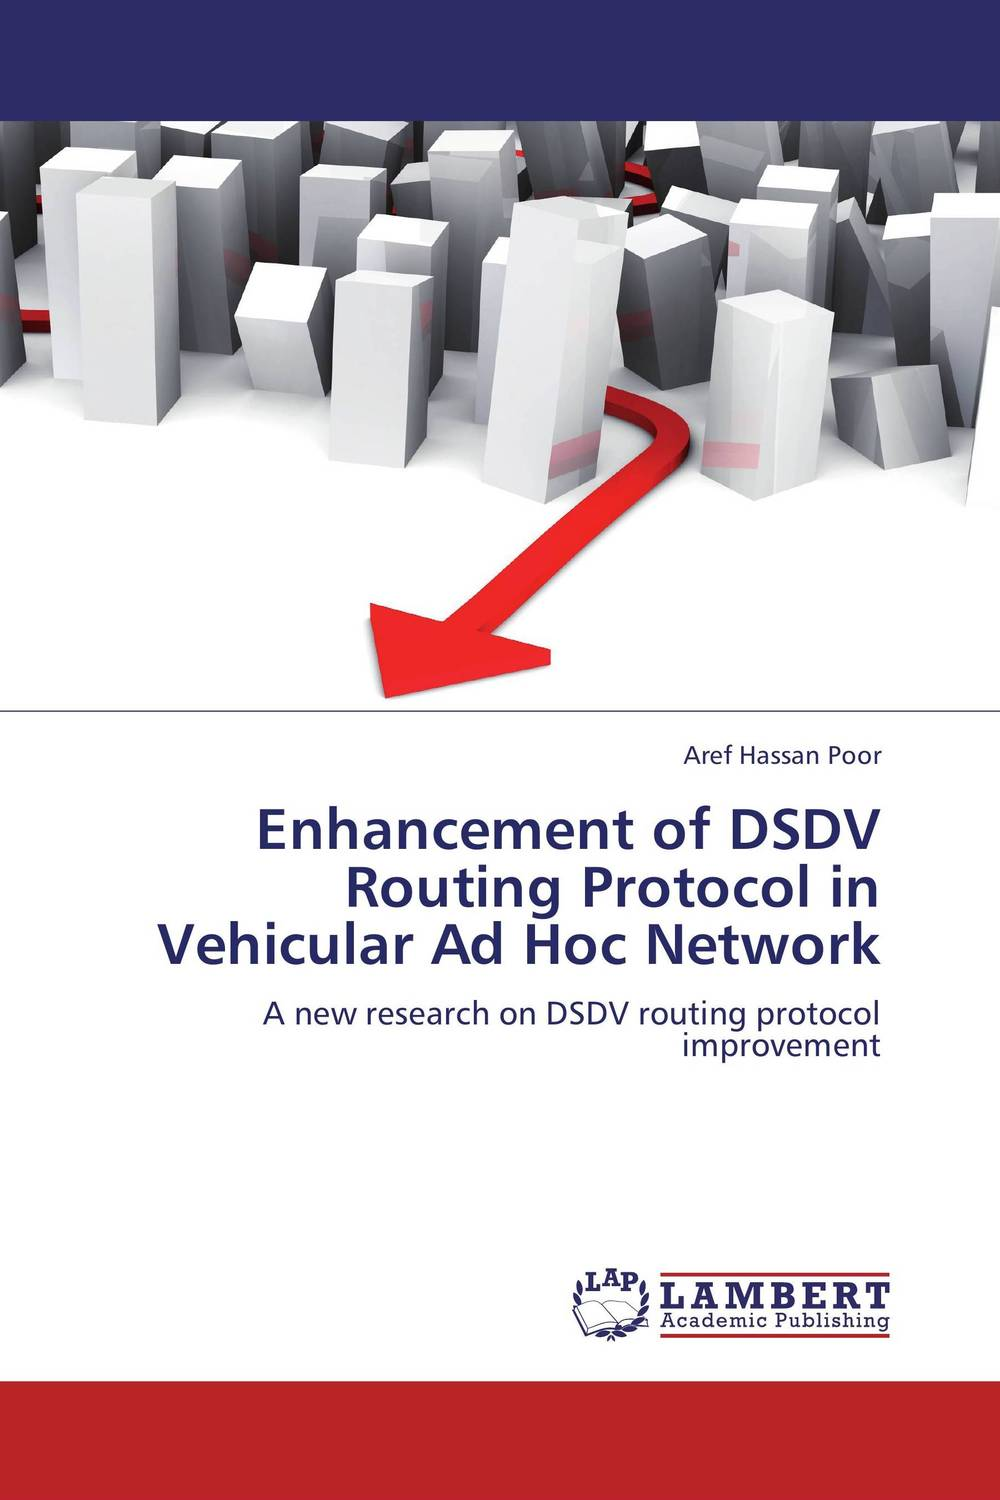 Enhancement of DSDV Routing Protocol in Vehicular Ad Hoc Network driven to distraction